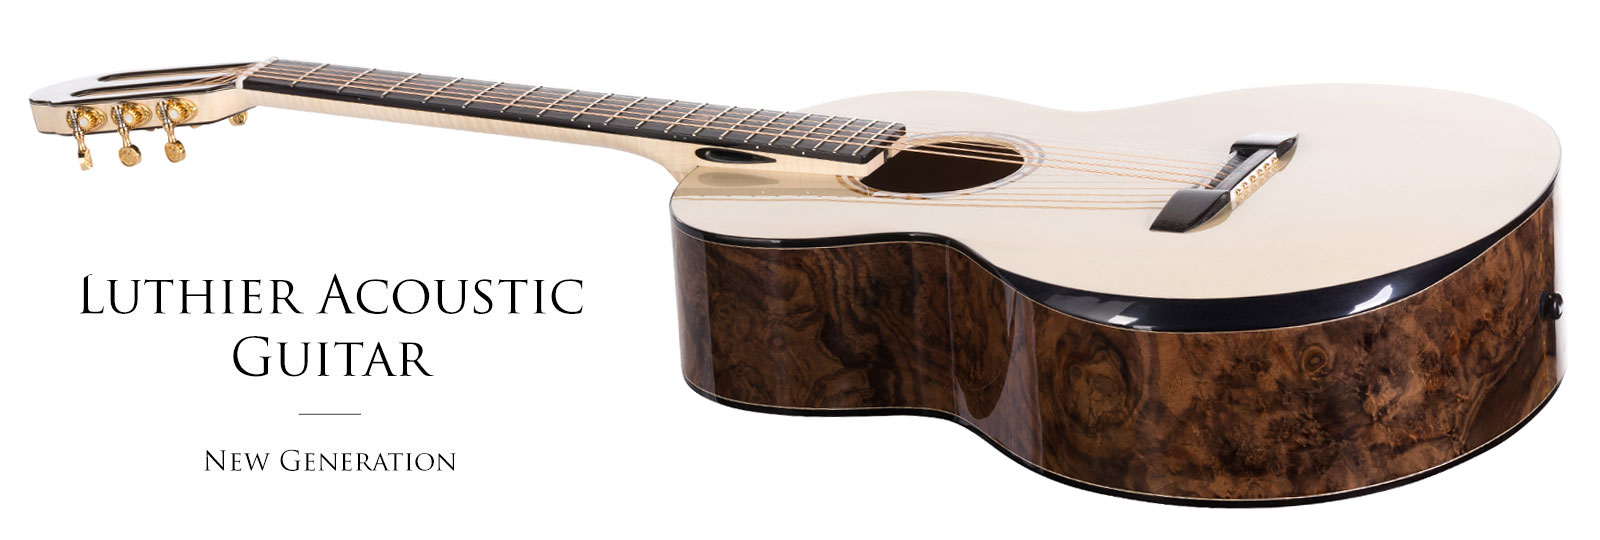 luthier-acoustic-guitar-the-Queen-of-Guitars